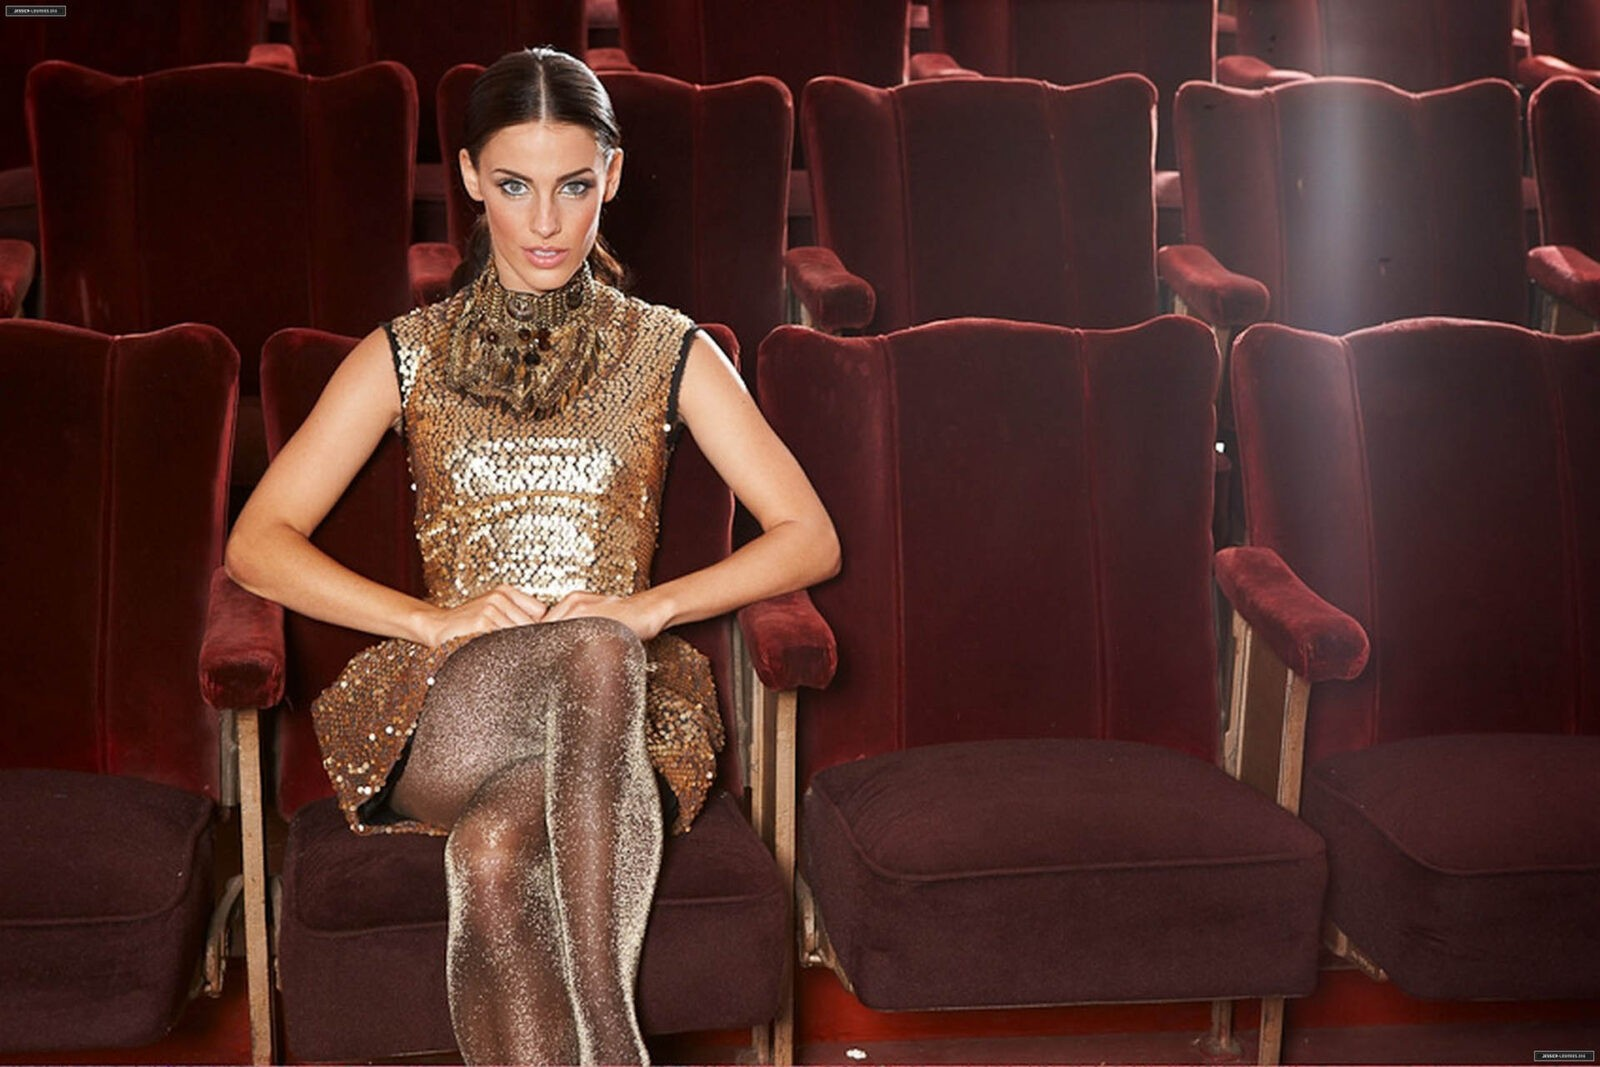 Picture Jessica Lowndes sitting on a chair in the theater